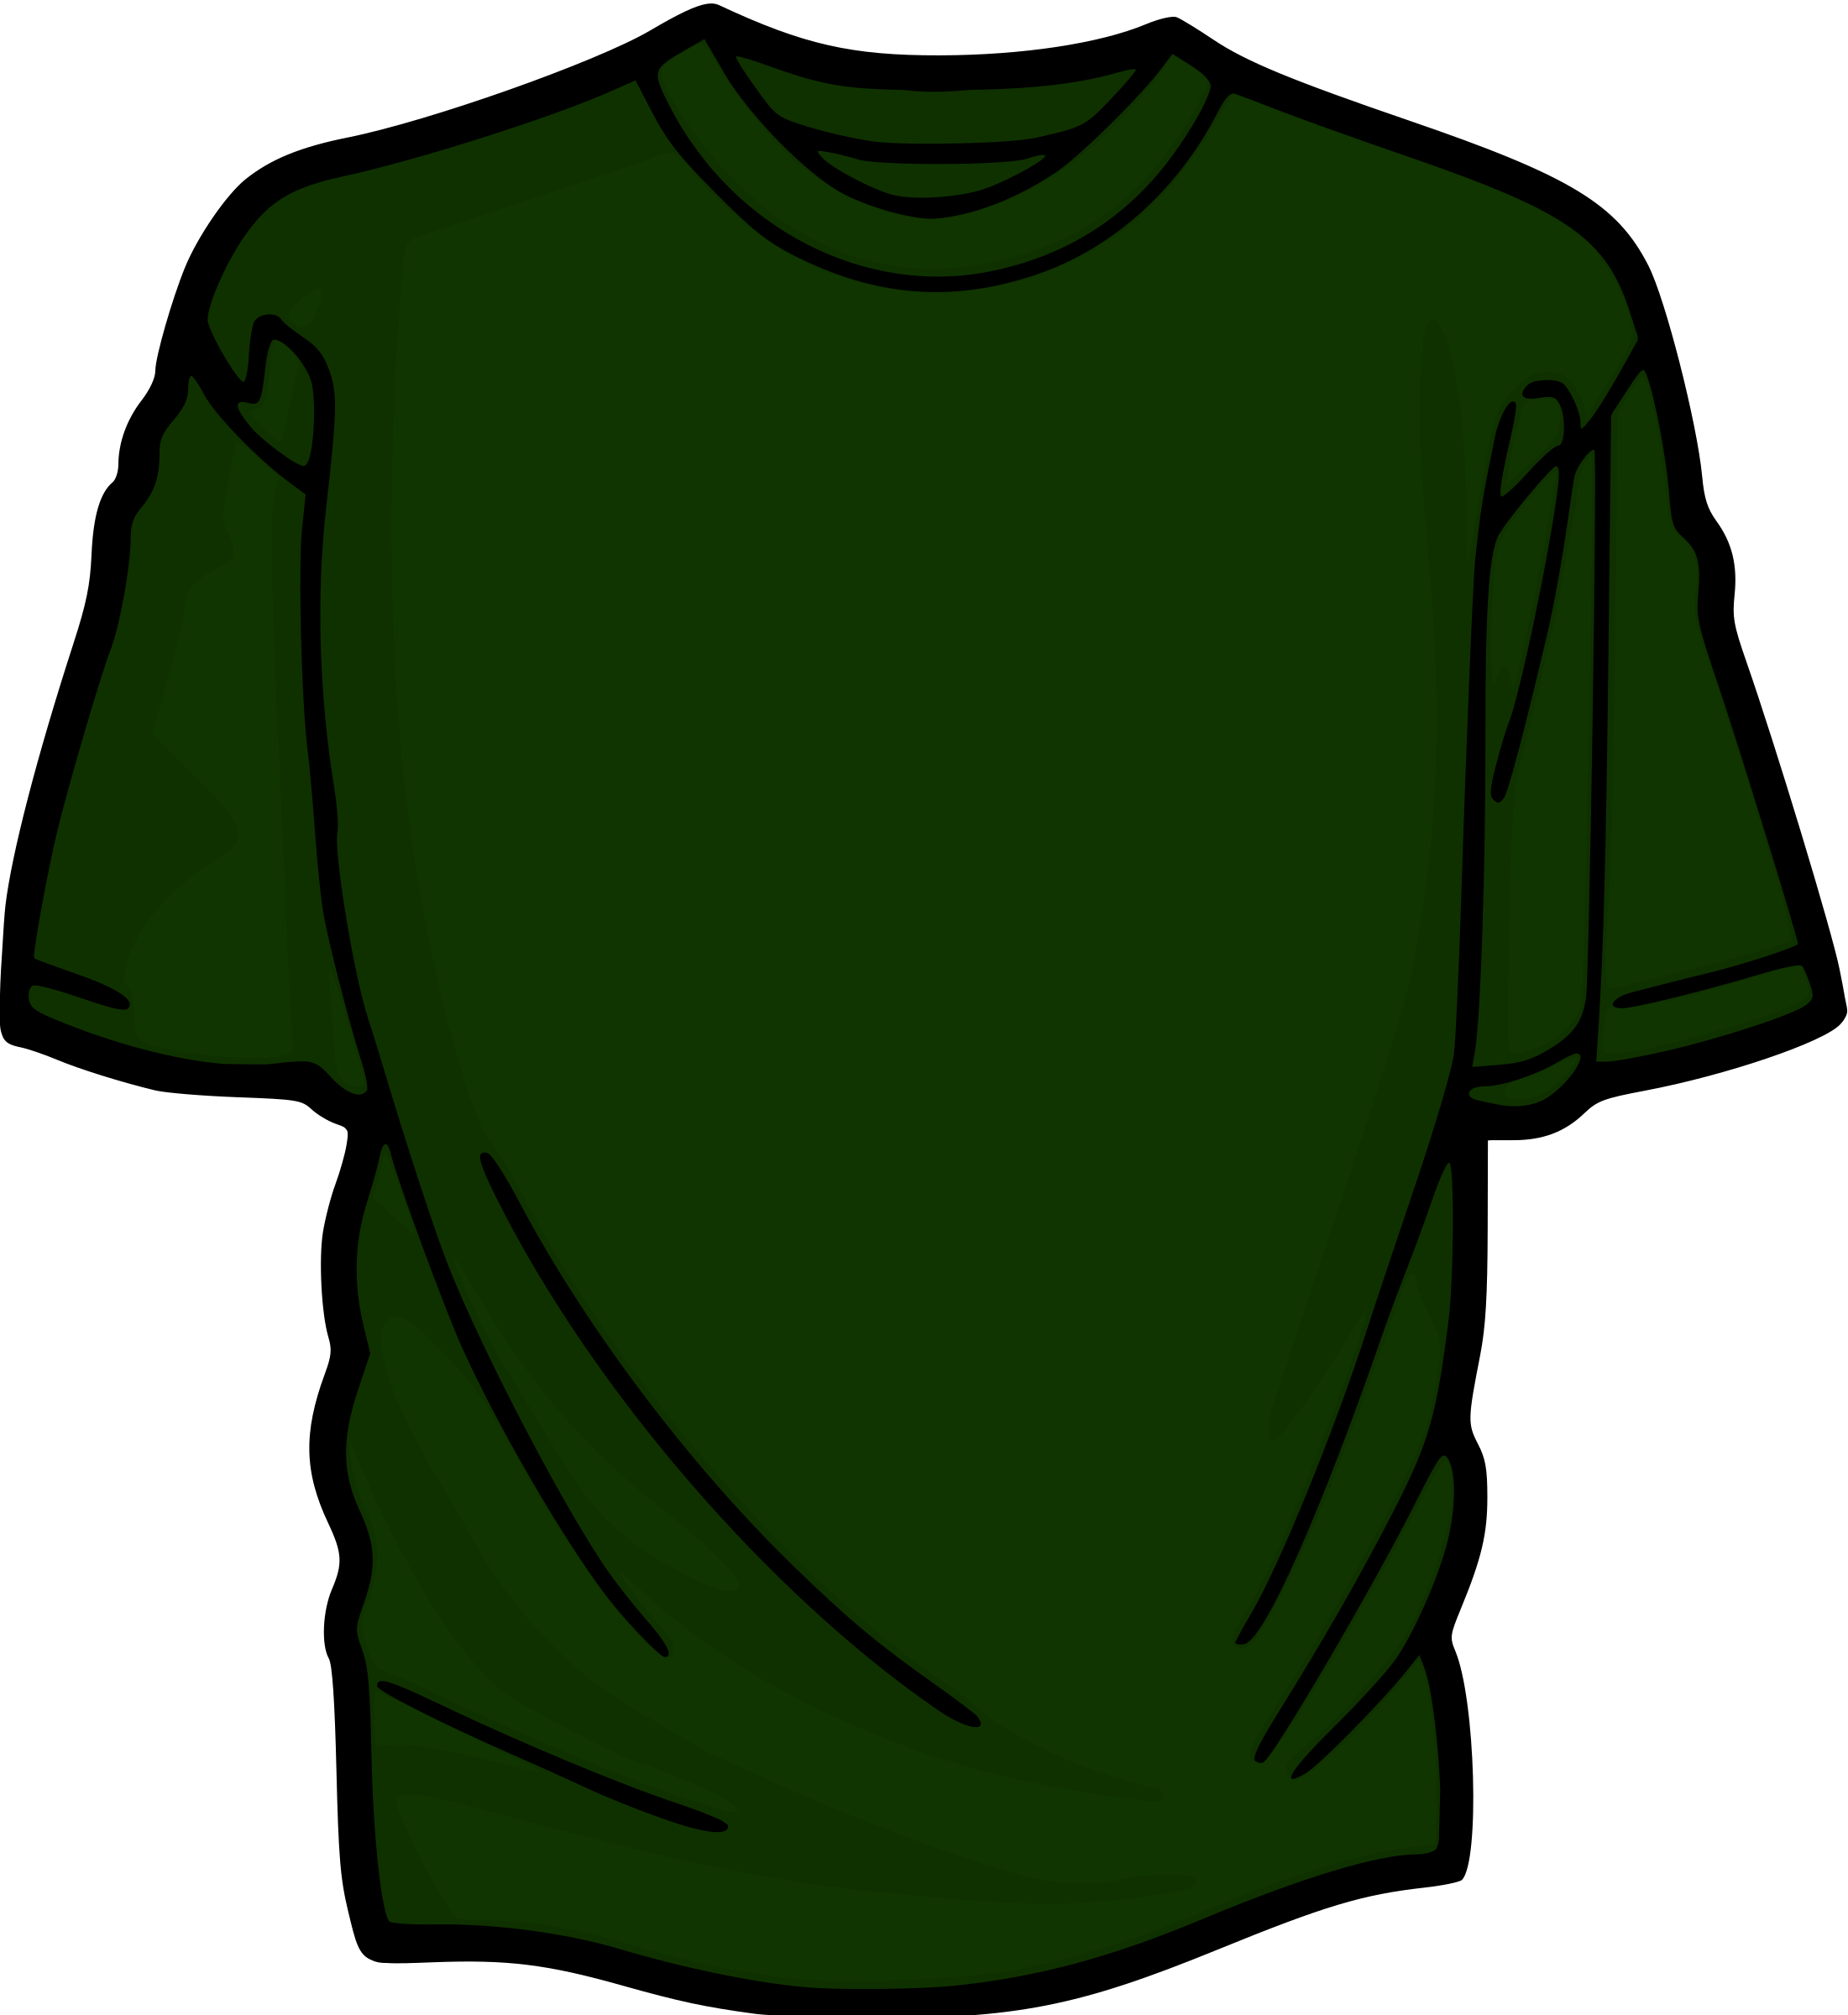 Green T-Shirt by kuba